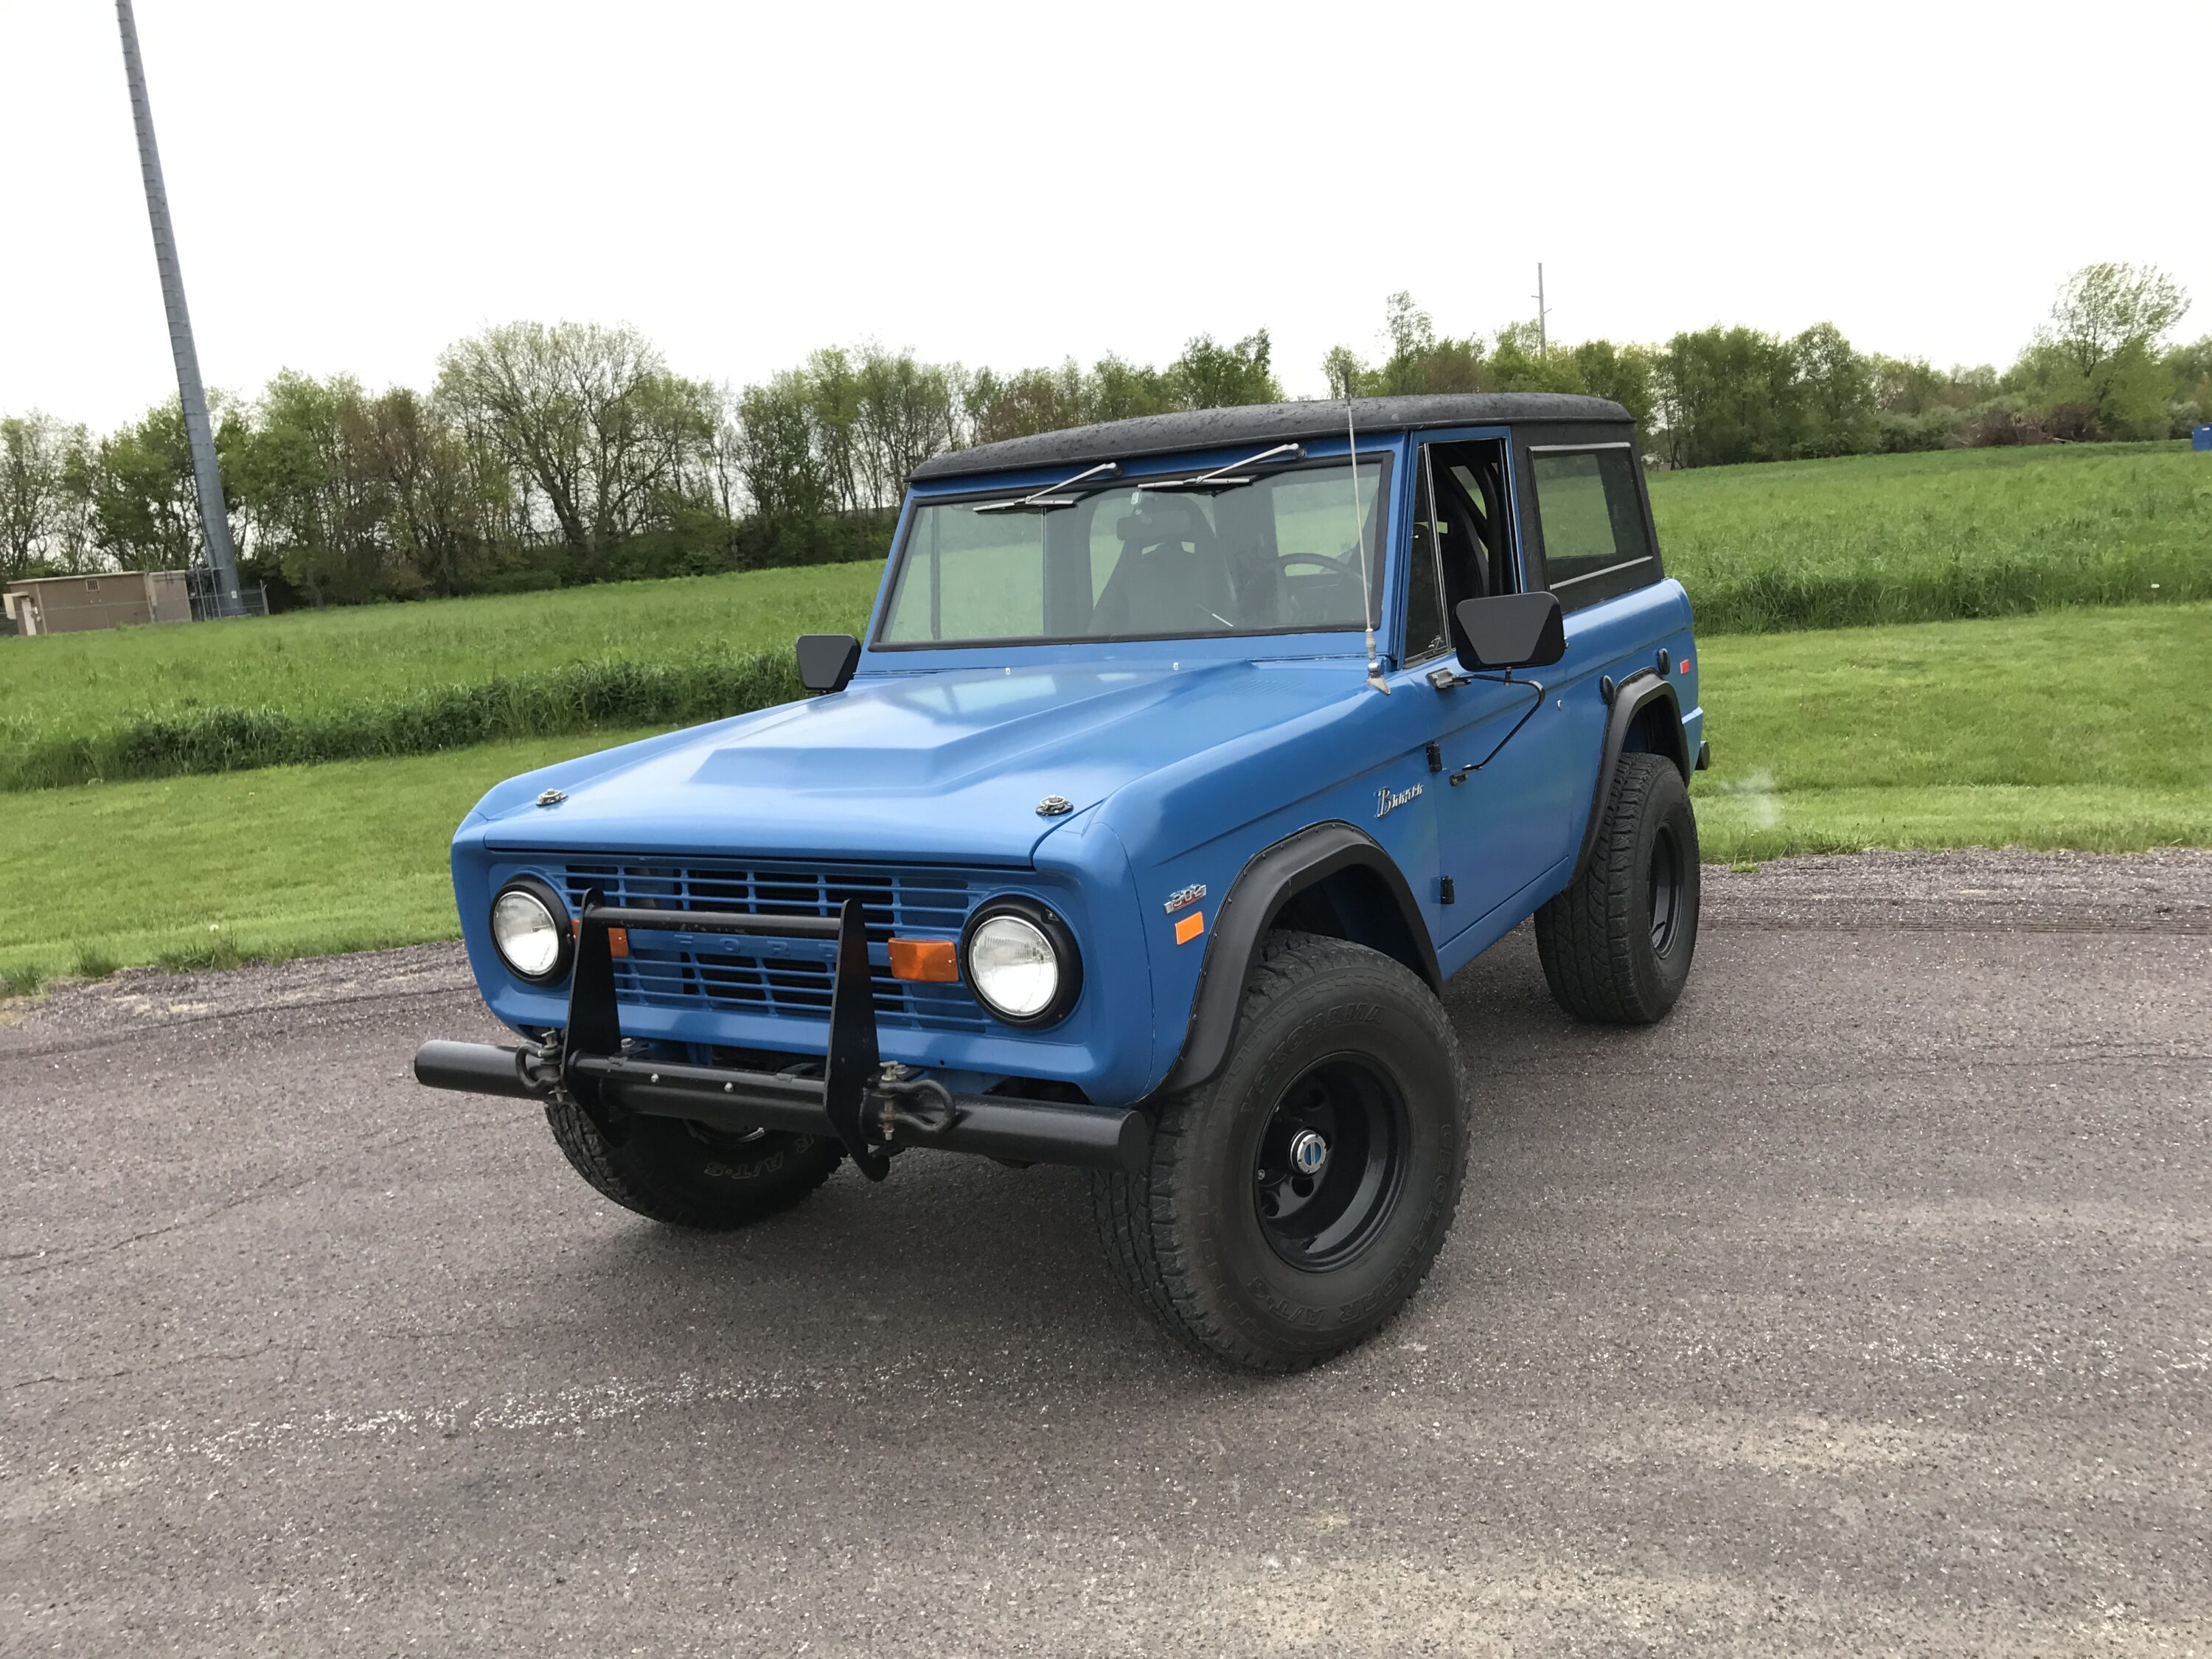 1969 Ford Bronco Blue and Black